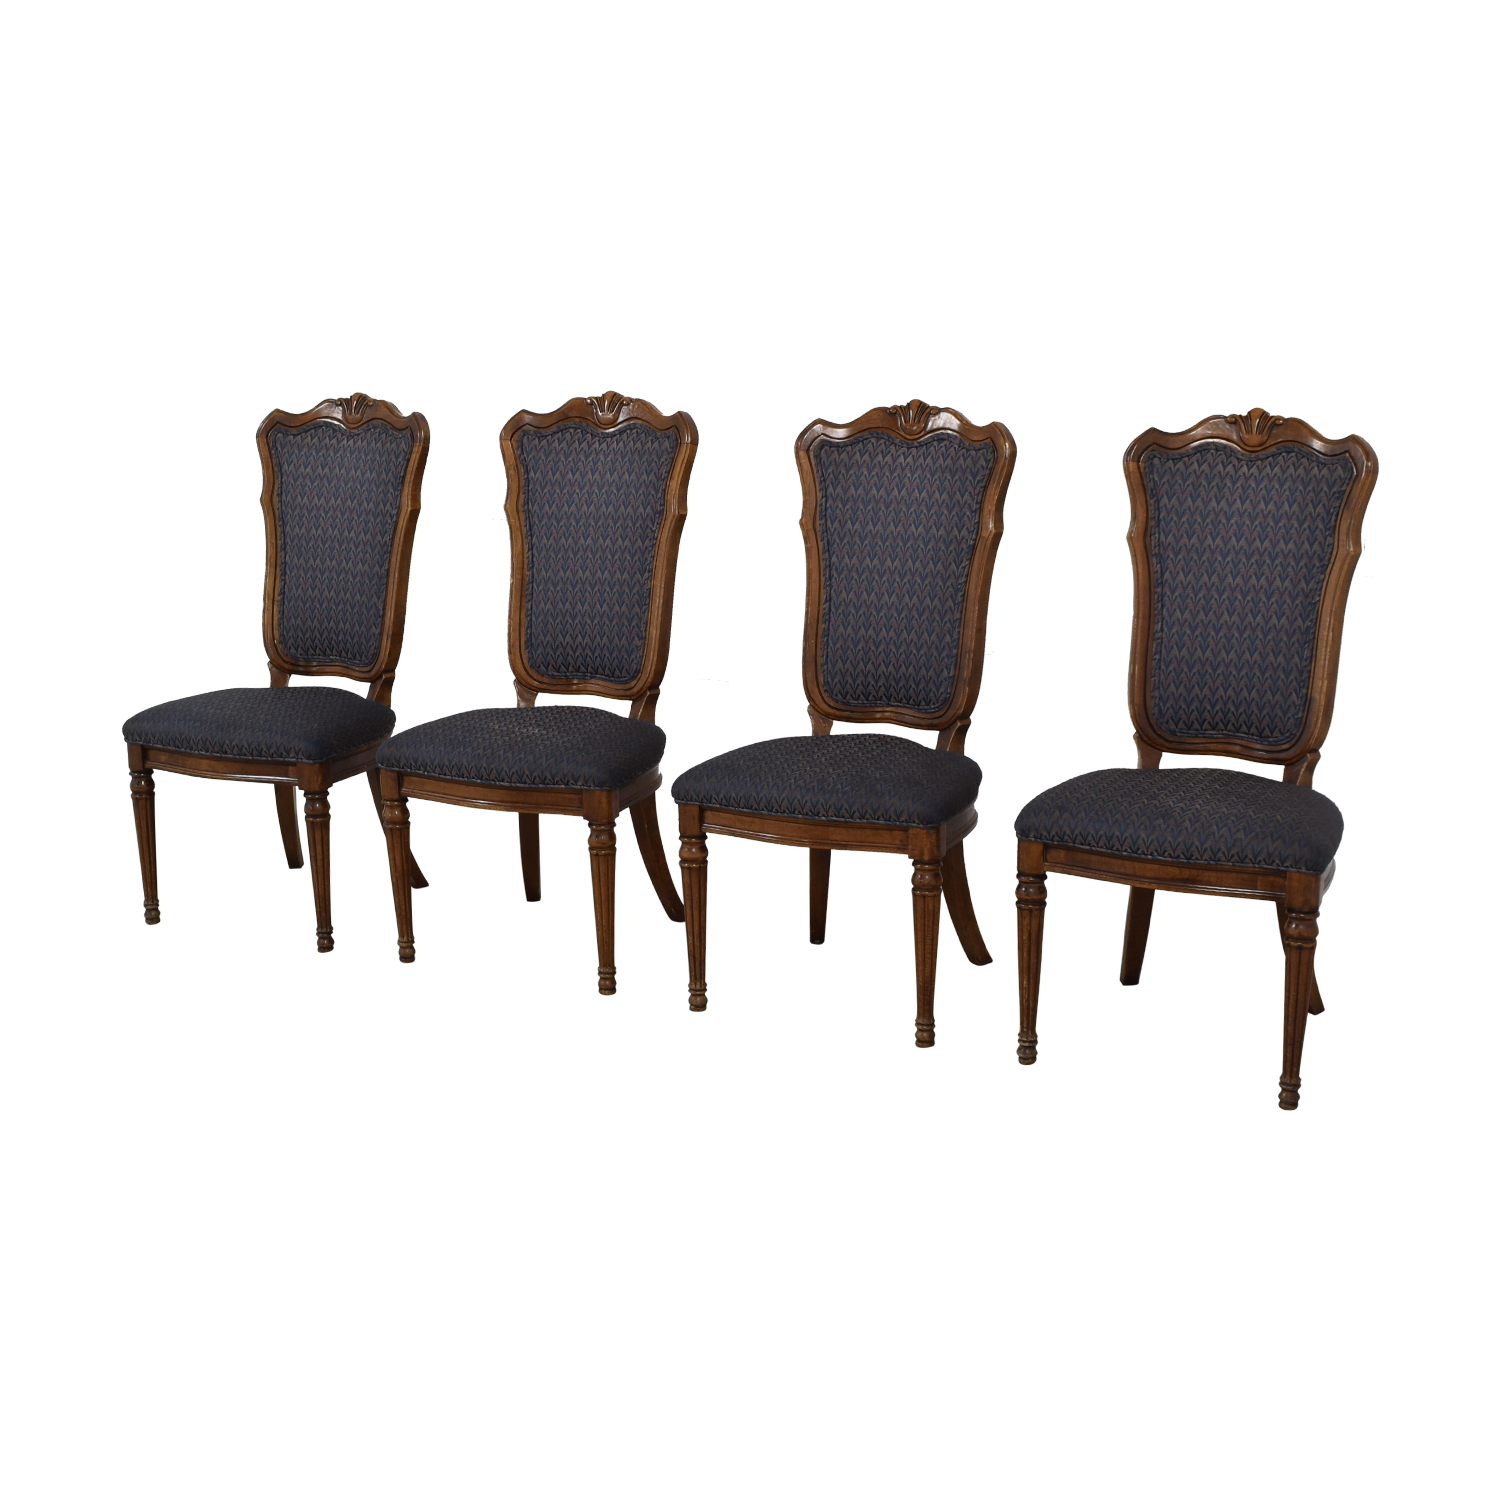 buy  Multi-Colored Navy Dining Chairs online